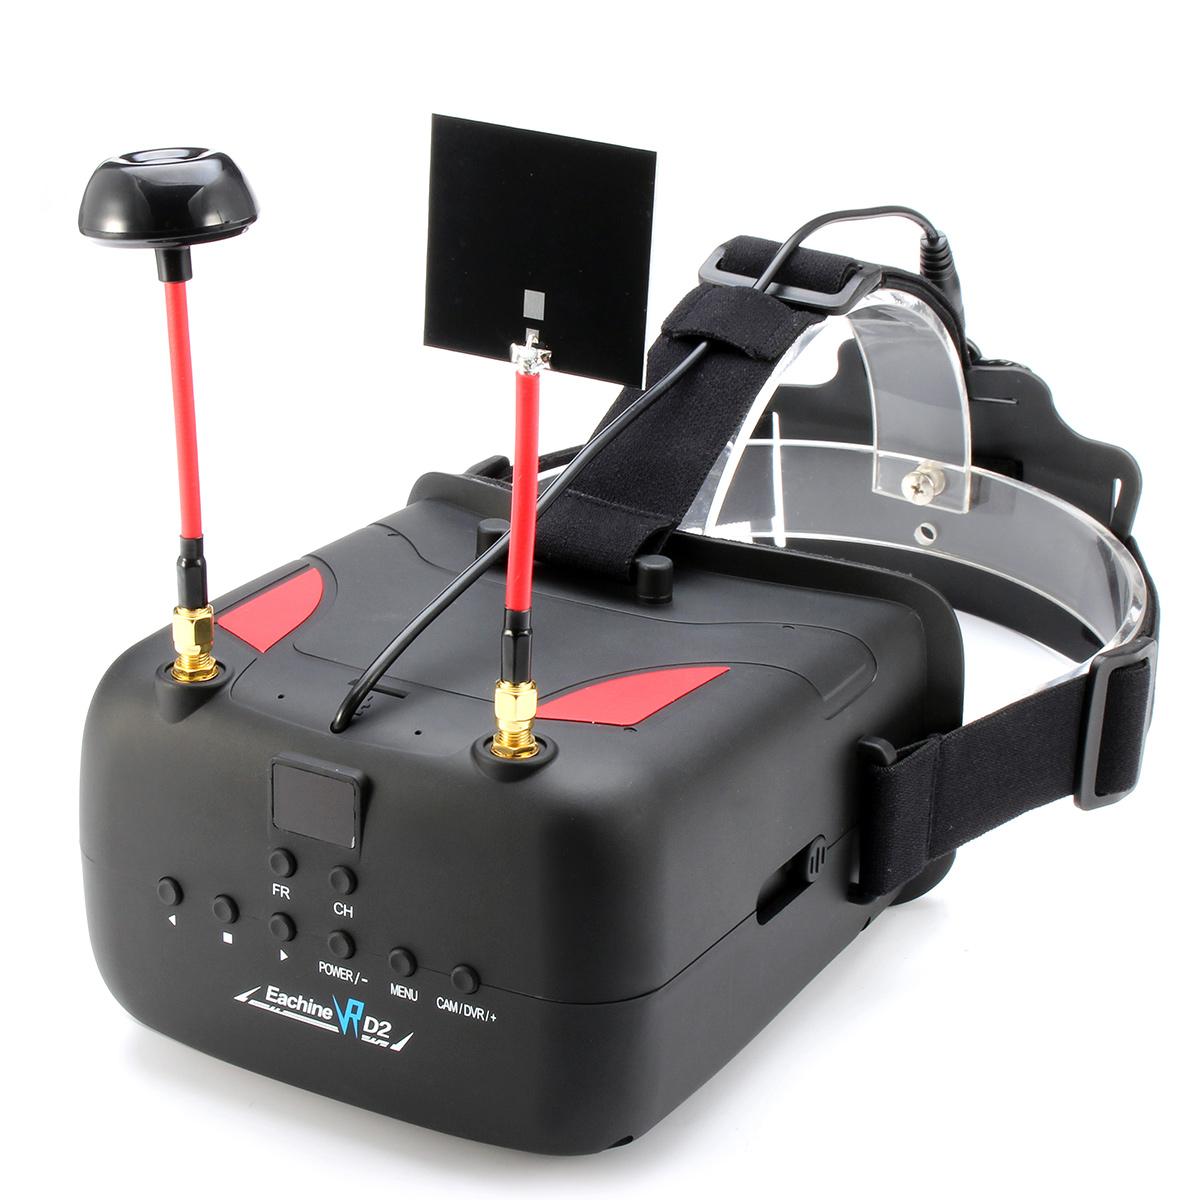 Eachine VR D2 5 Inches 800*480 40CH Raceband 5.8G Diversity FPV Goggles with DVR Lens Adjustable - SNHE